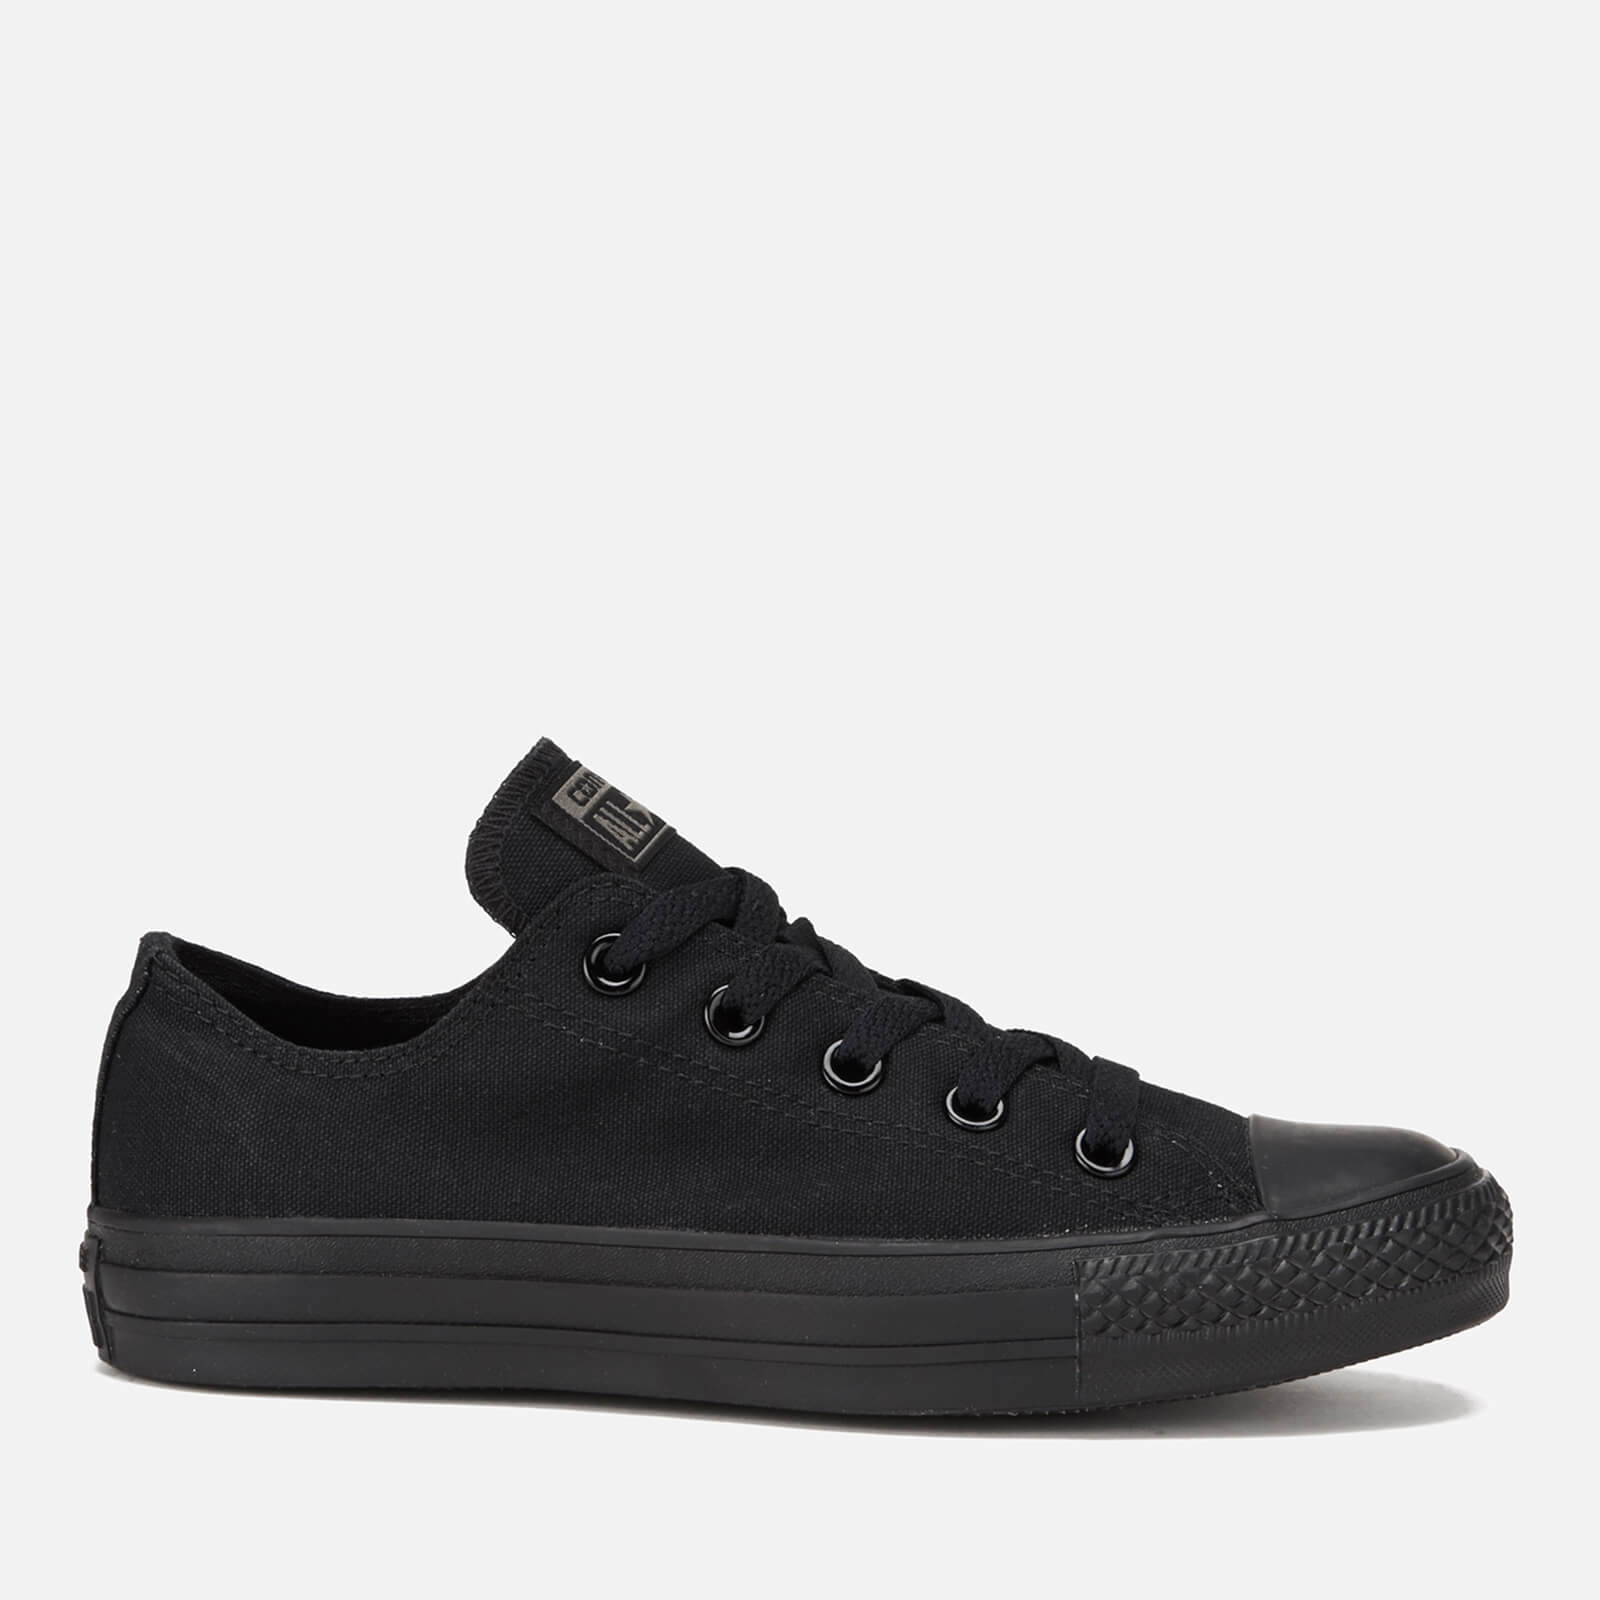 70c4e6122b27 Converse Chuck Taylor All Star Ox Canvas Trainers - Black Monochrome